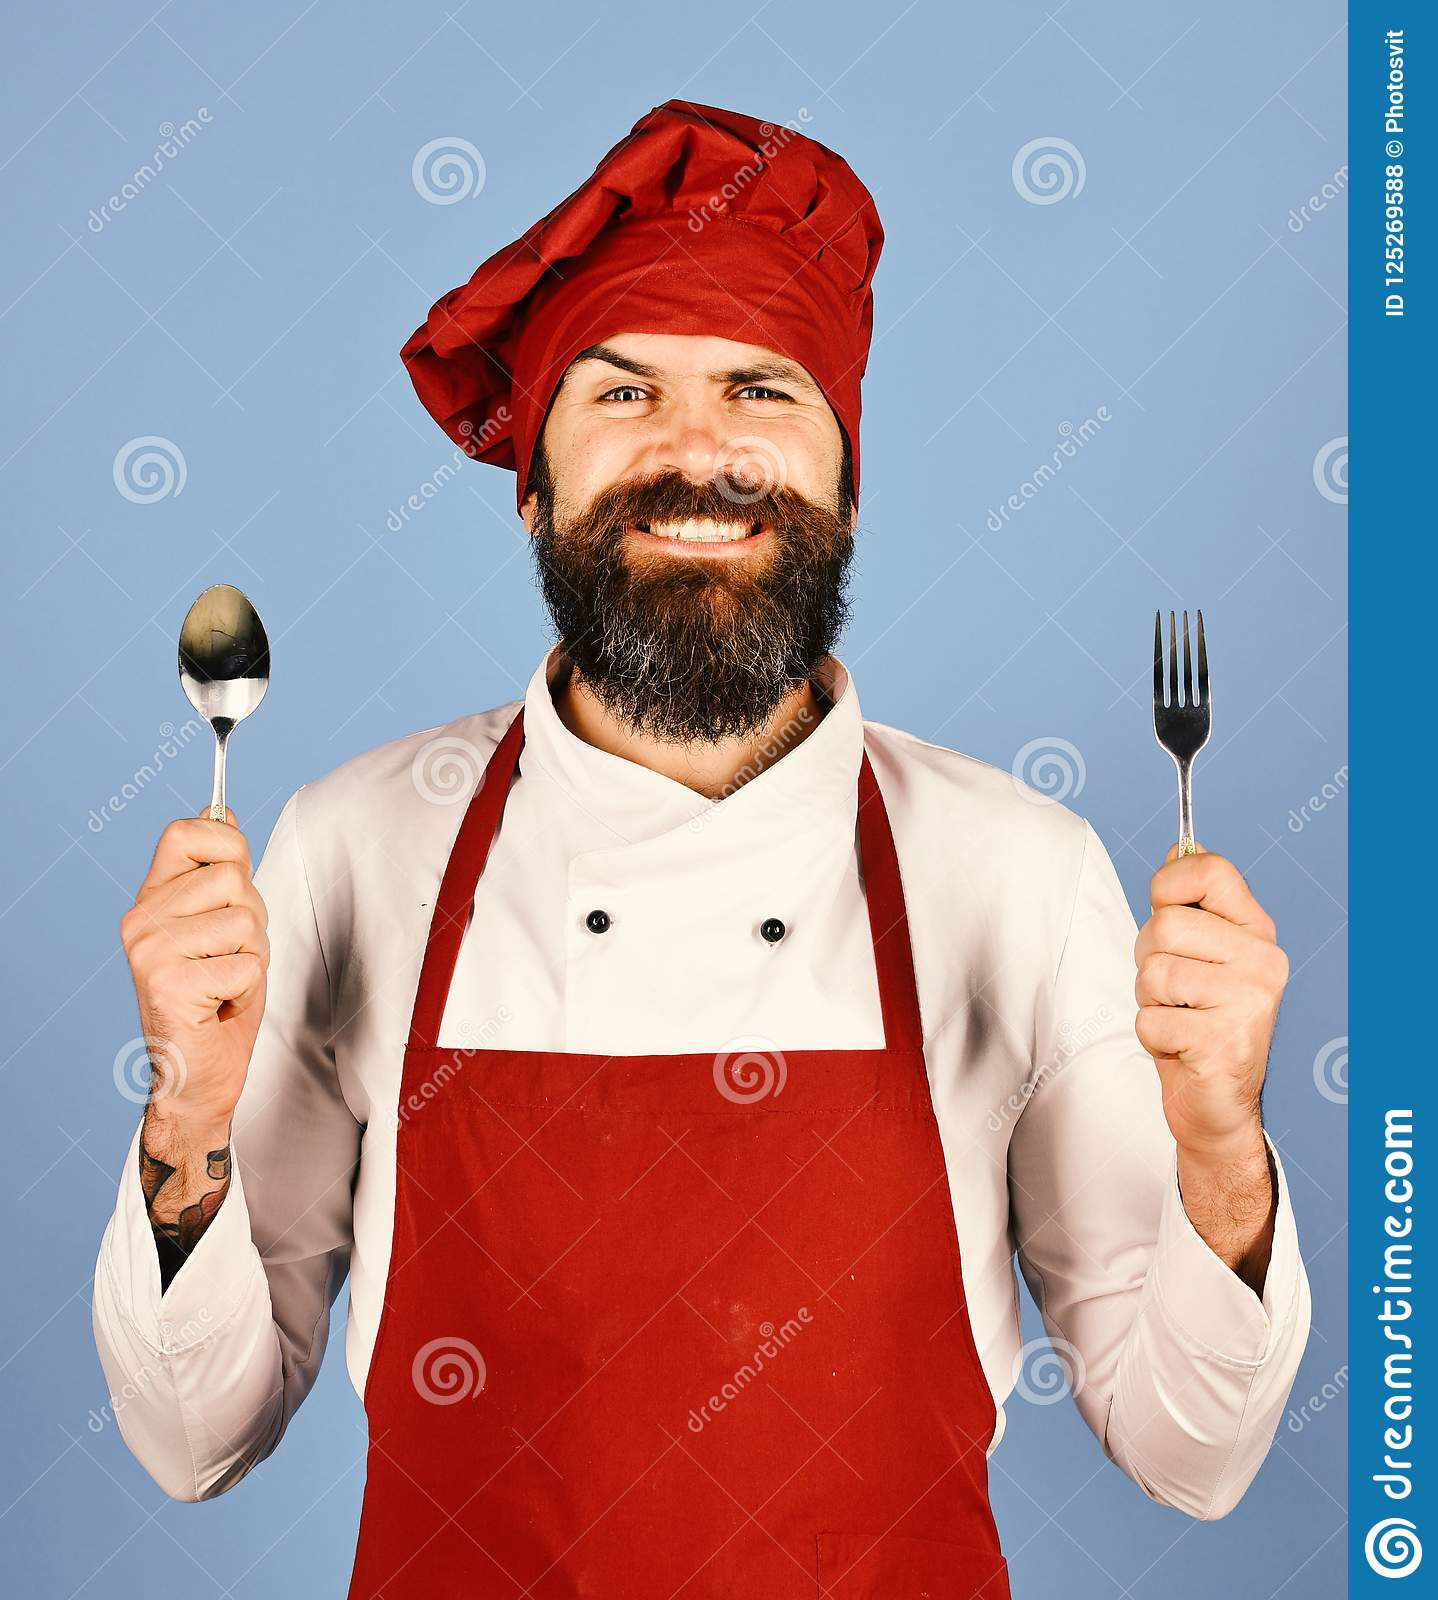 Man with beard holds kitchenware on blue background. Chef holds cutlery. Professional cookery concept. Cook with happy